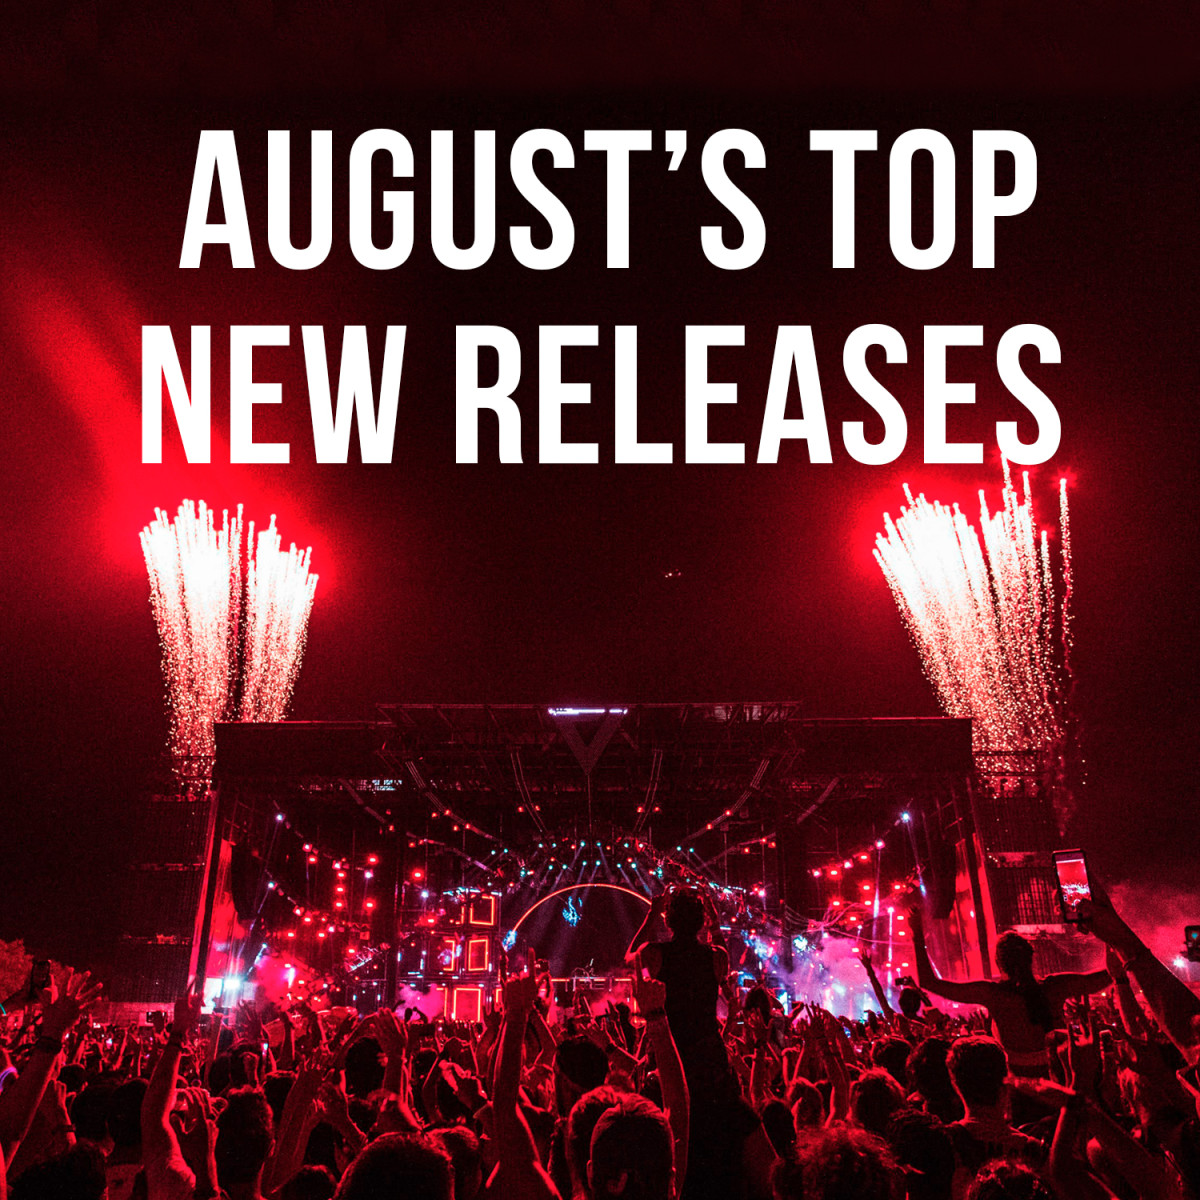 Say Goodbye to Summer with August's Cool New Releases [Playlist]